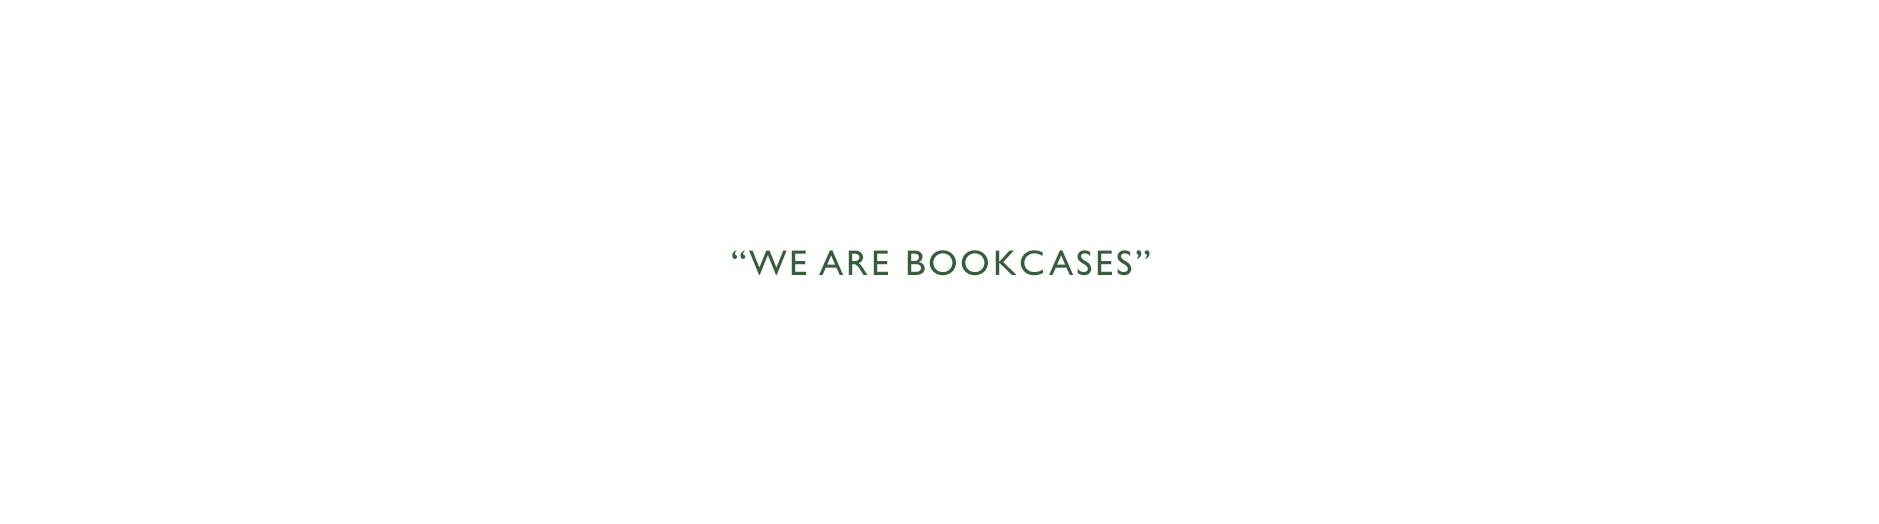 we-are-bookcases